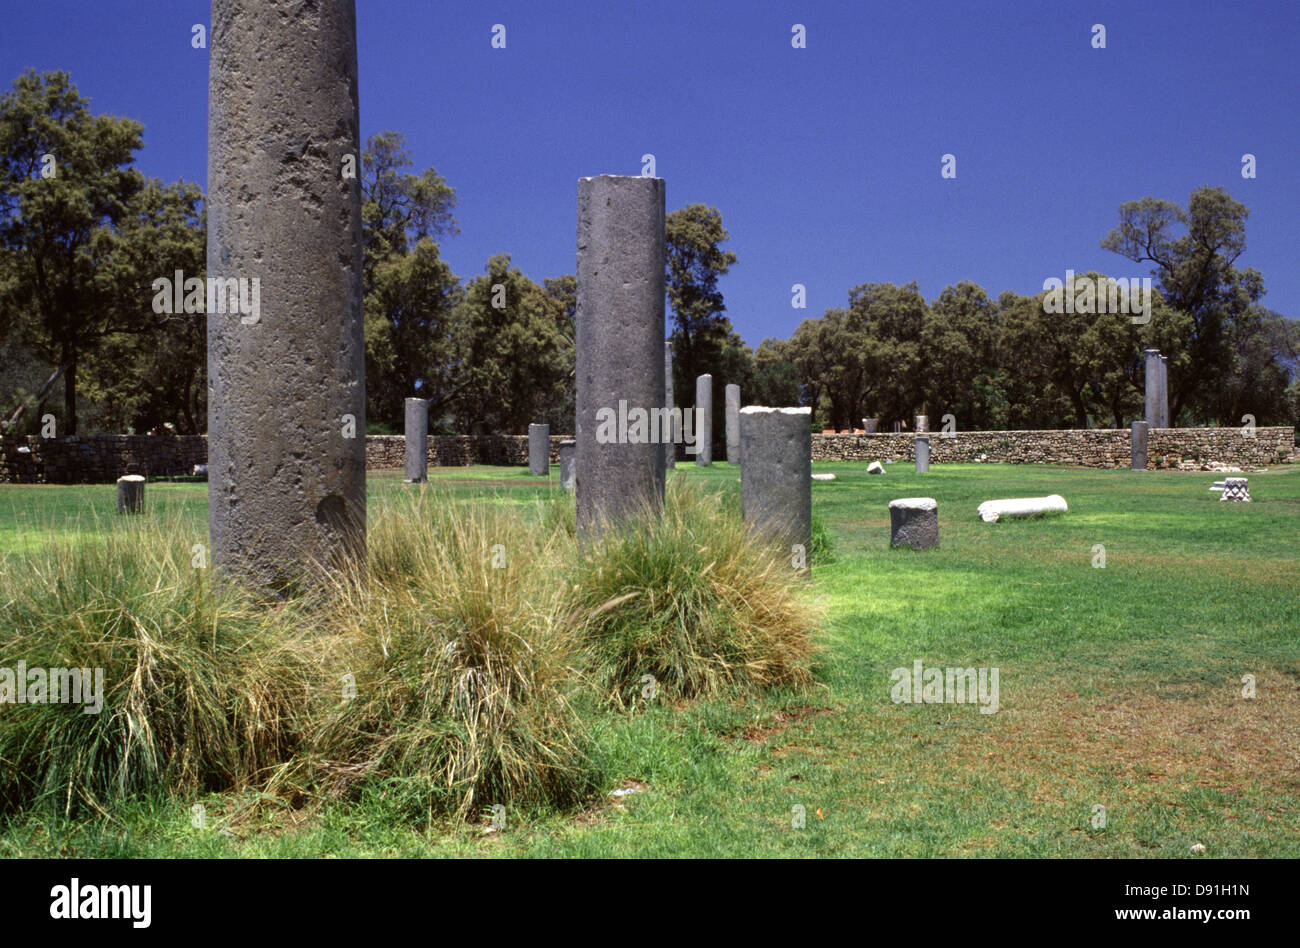 Ancient pillars at the Ashkelon National Park in the coastal city of Ashkelon in the Southern District of Israel - Stock Image